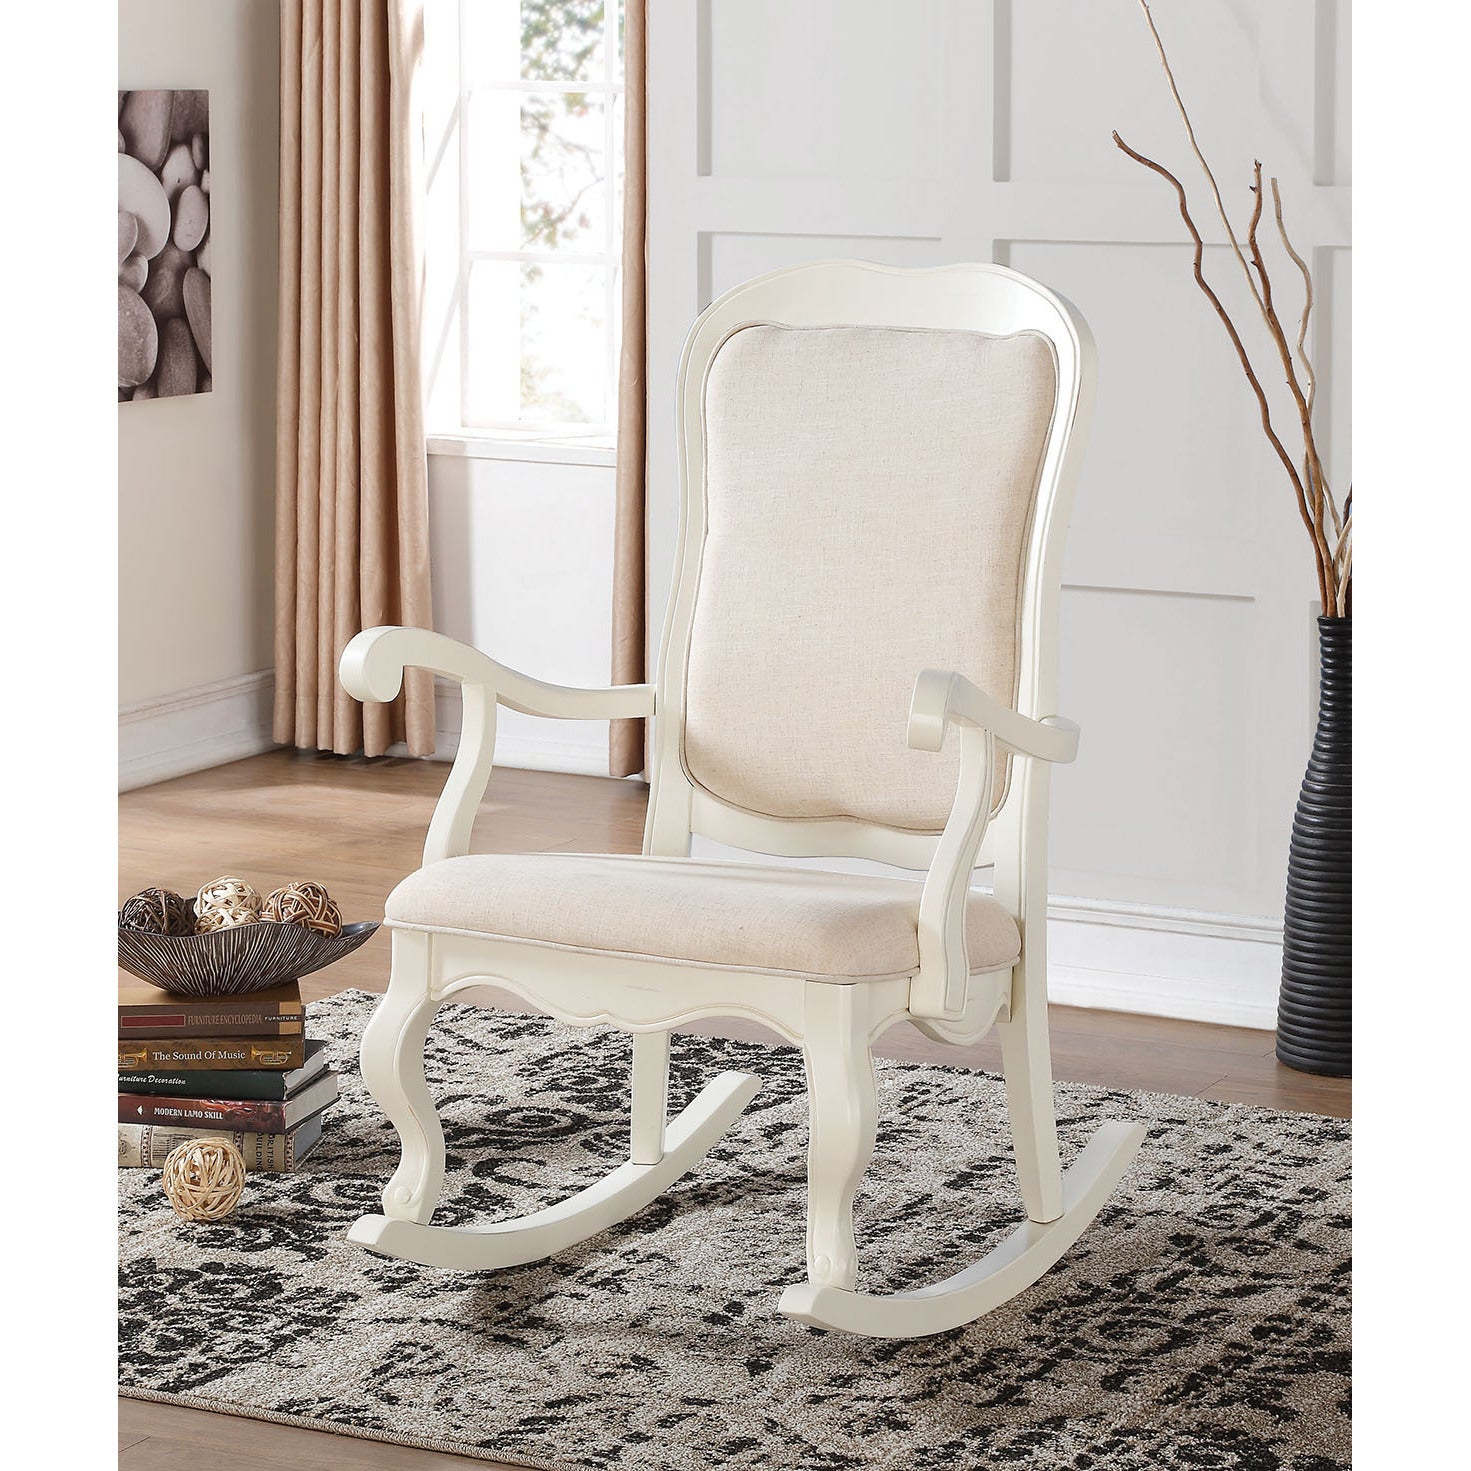 Sharan Antique White Wooden Rocking Chair Pertaining To Ethel Country White Rocking Chairs (View 15 of 20)